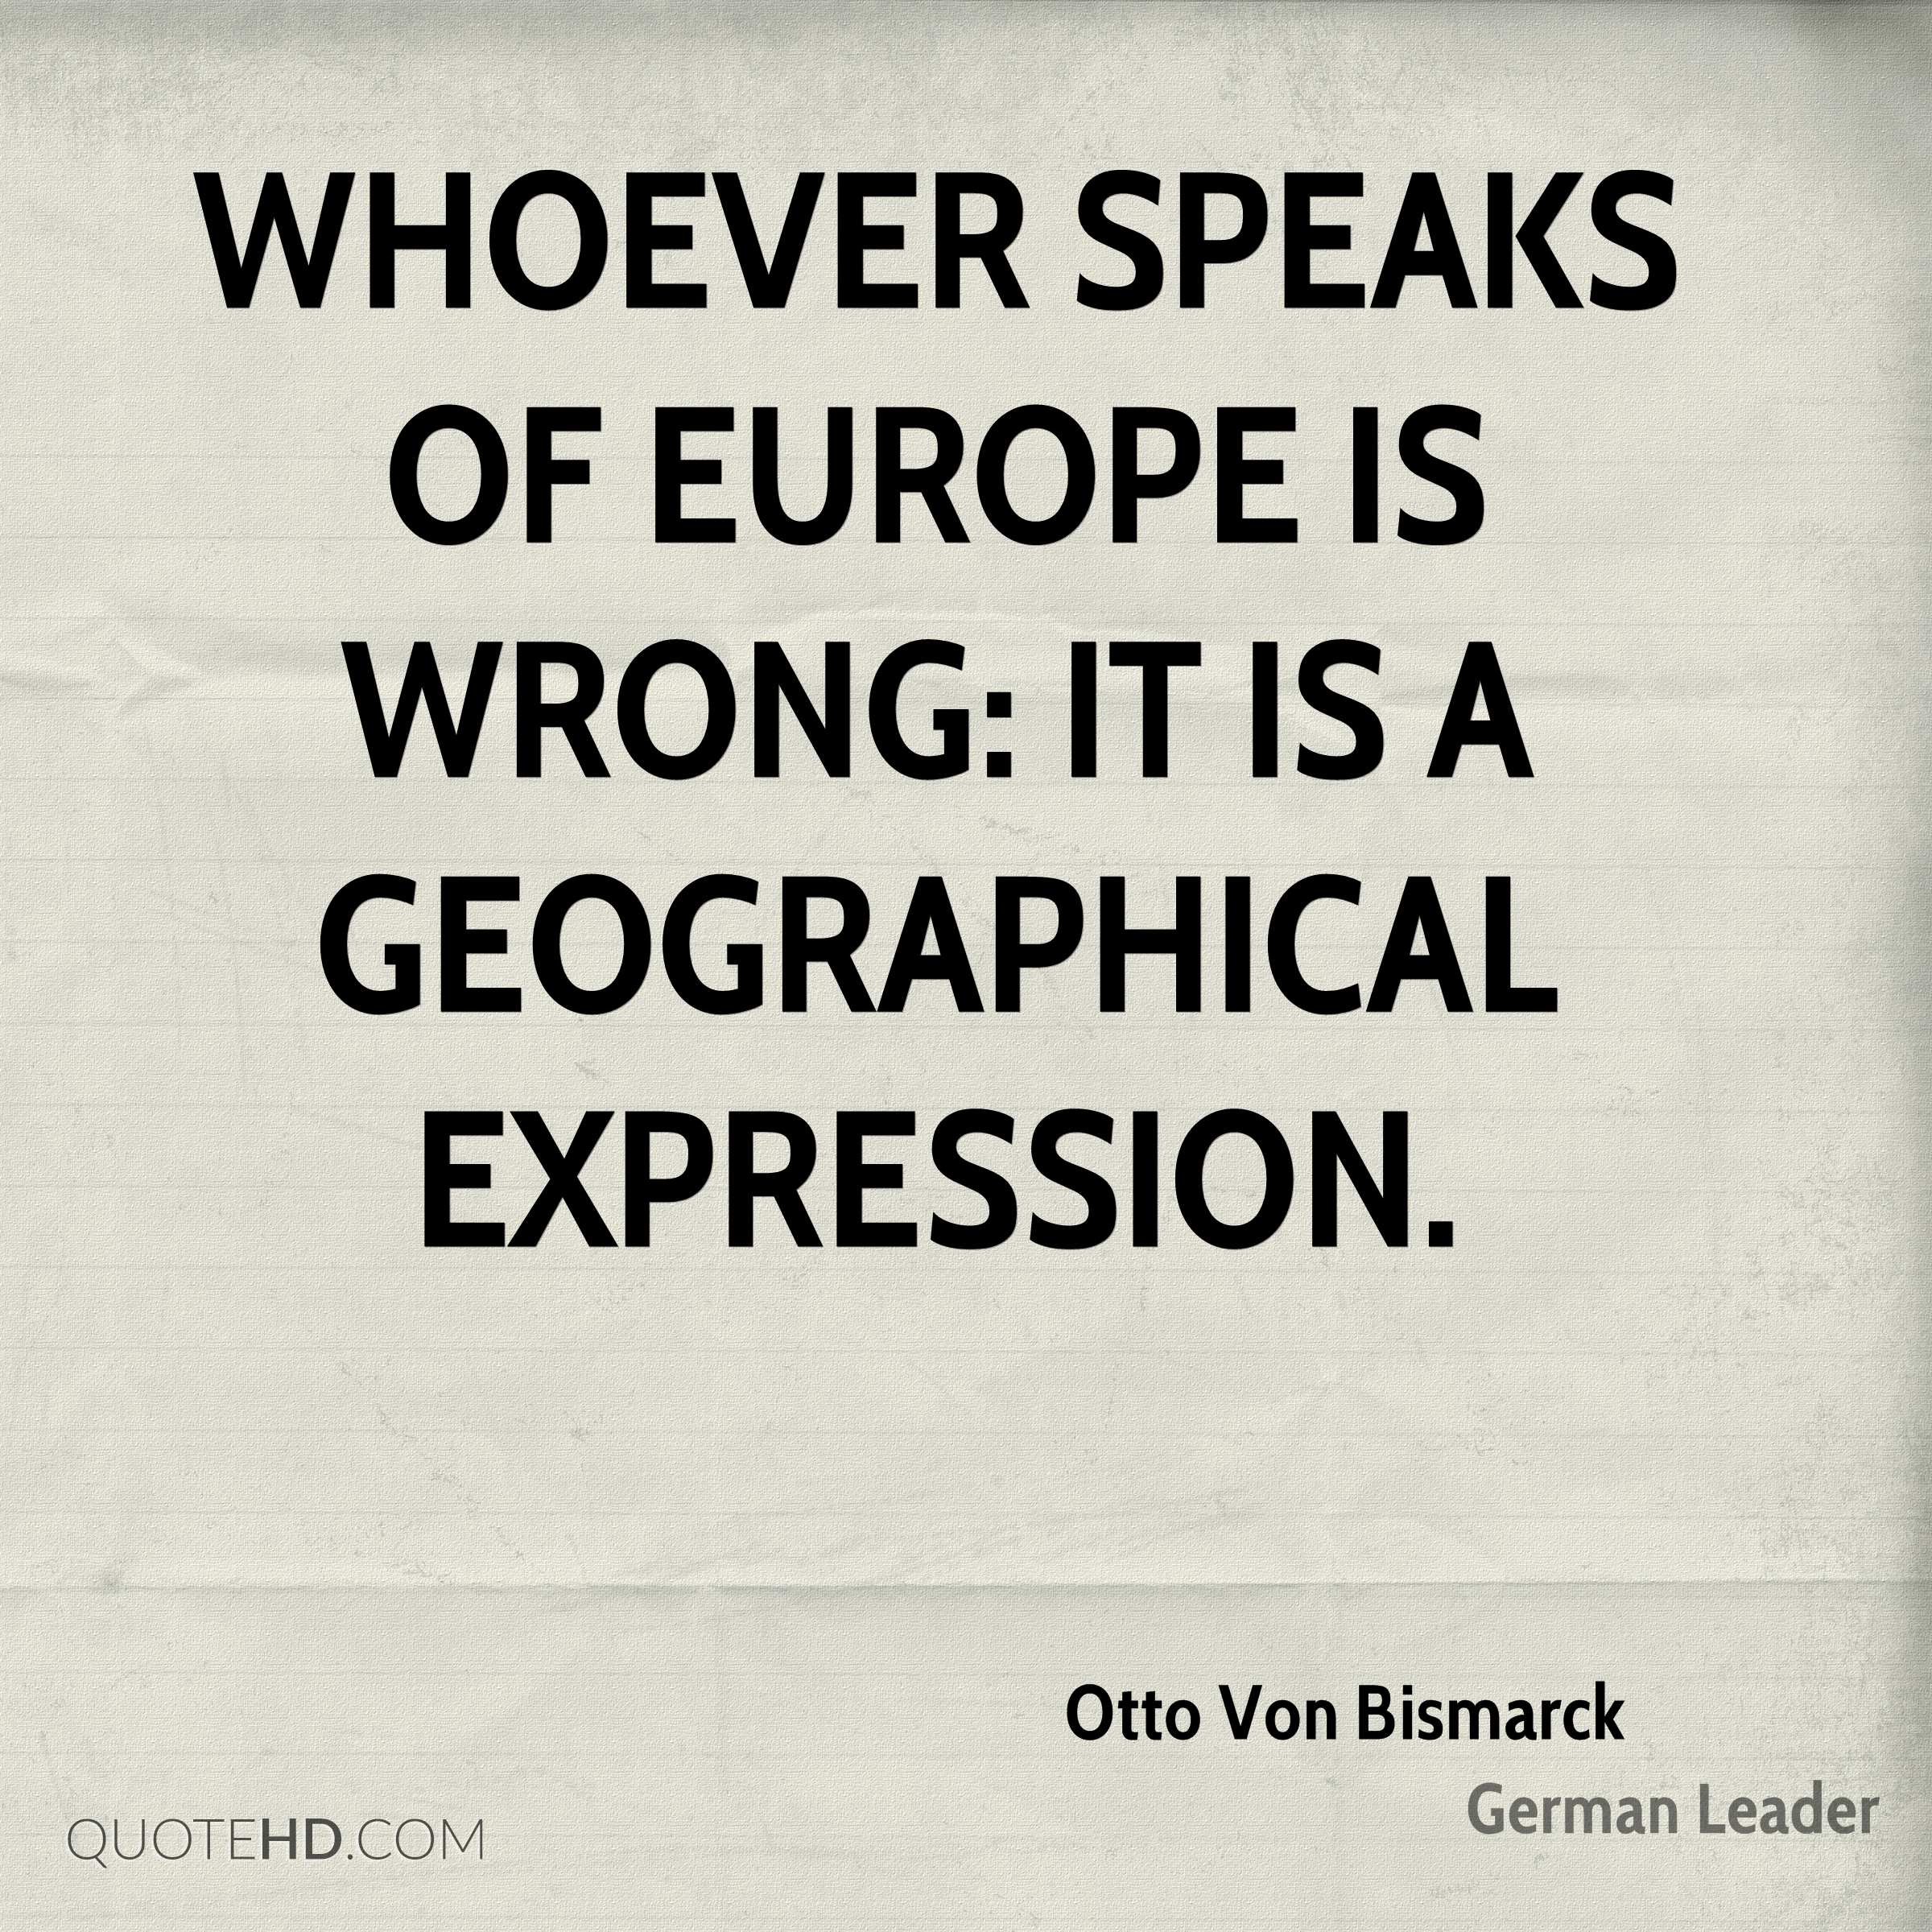 Whoever speaks of Europe is wrong: it is a geographical expression.